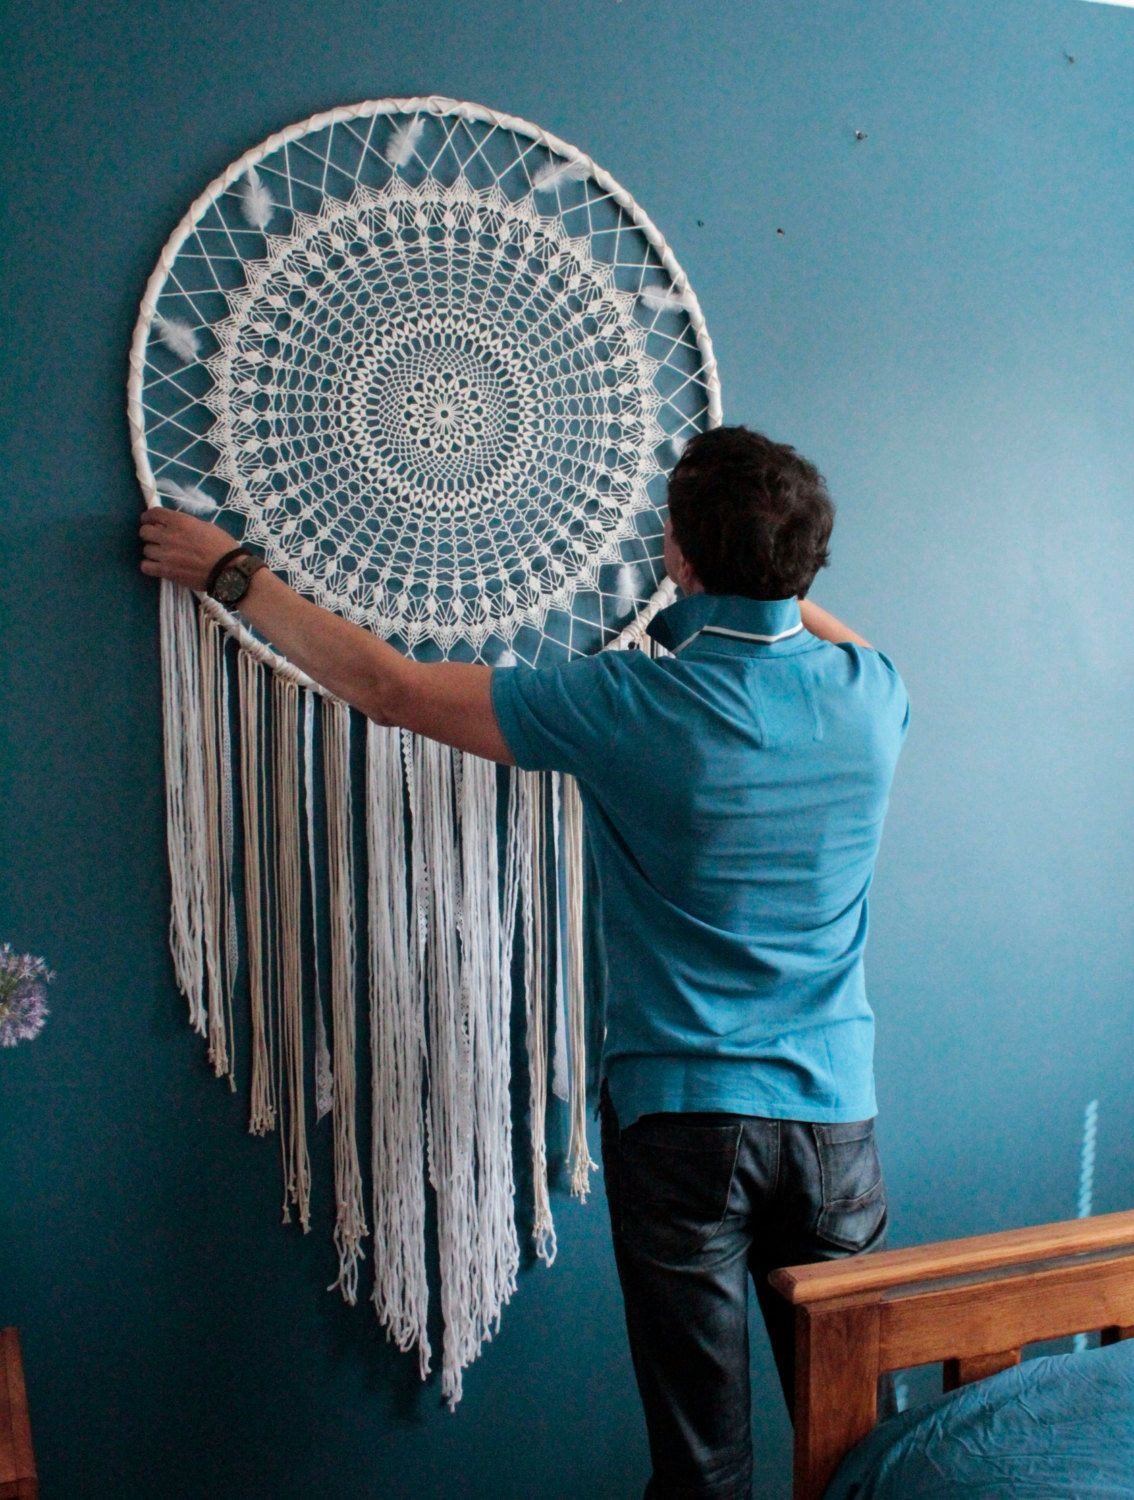 20 creative ways to decorate your home with unexpected handmade 20 creative ways to decorate your home with unexpected handmade wall decor amipublicfo Gallery